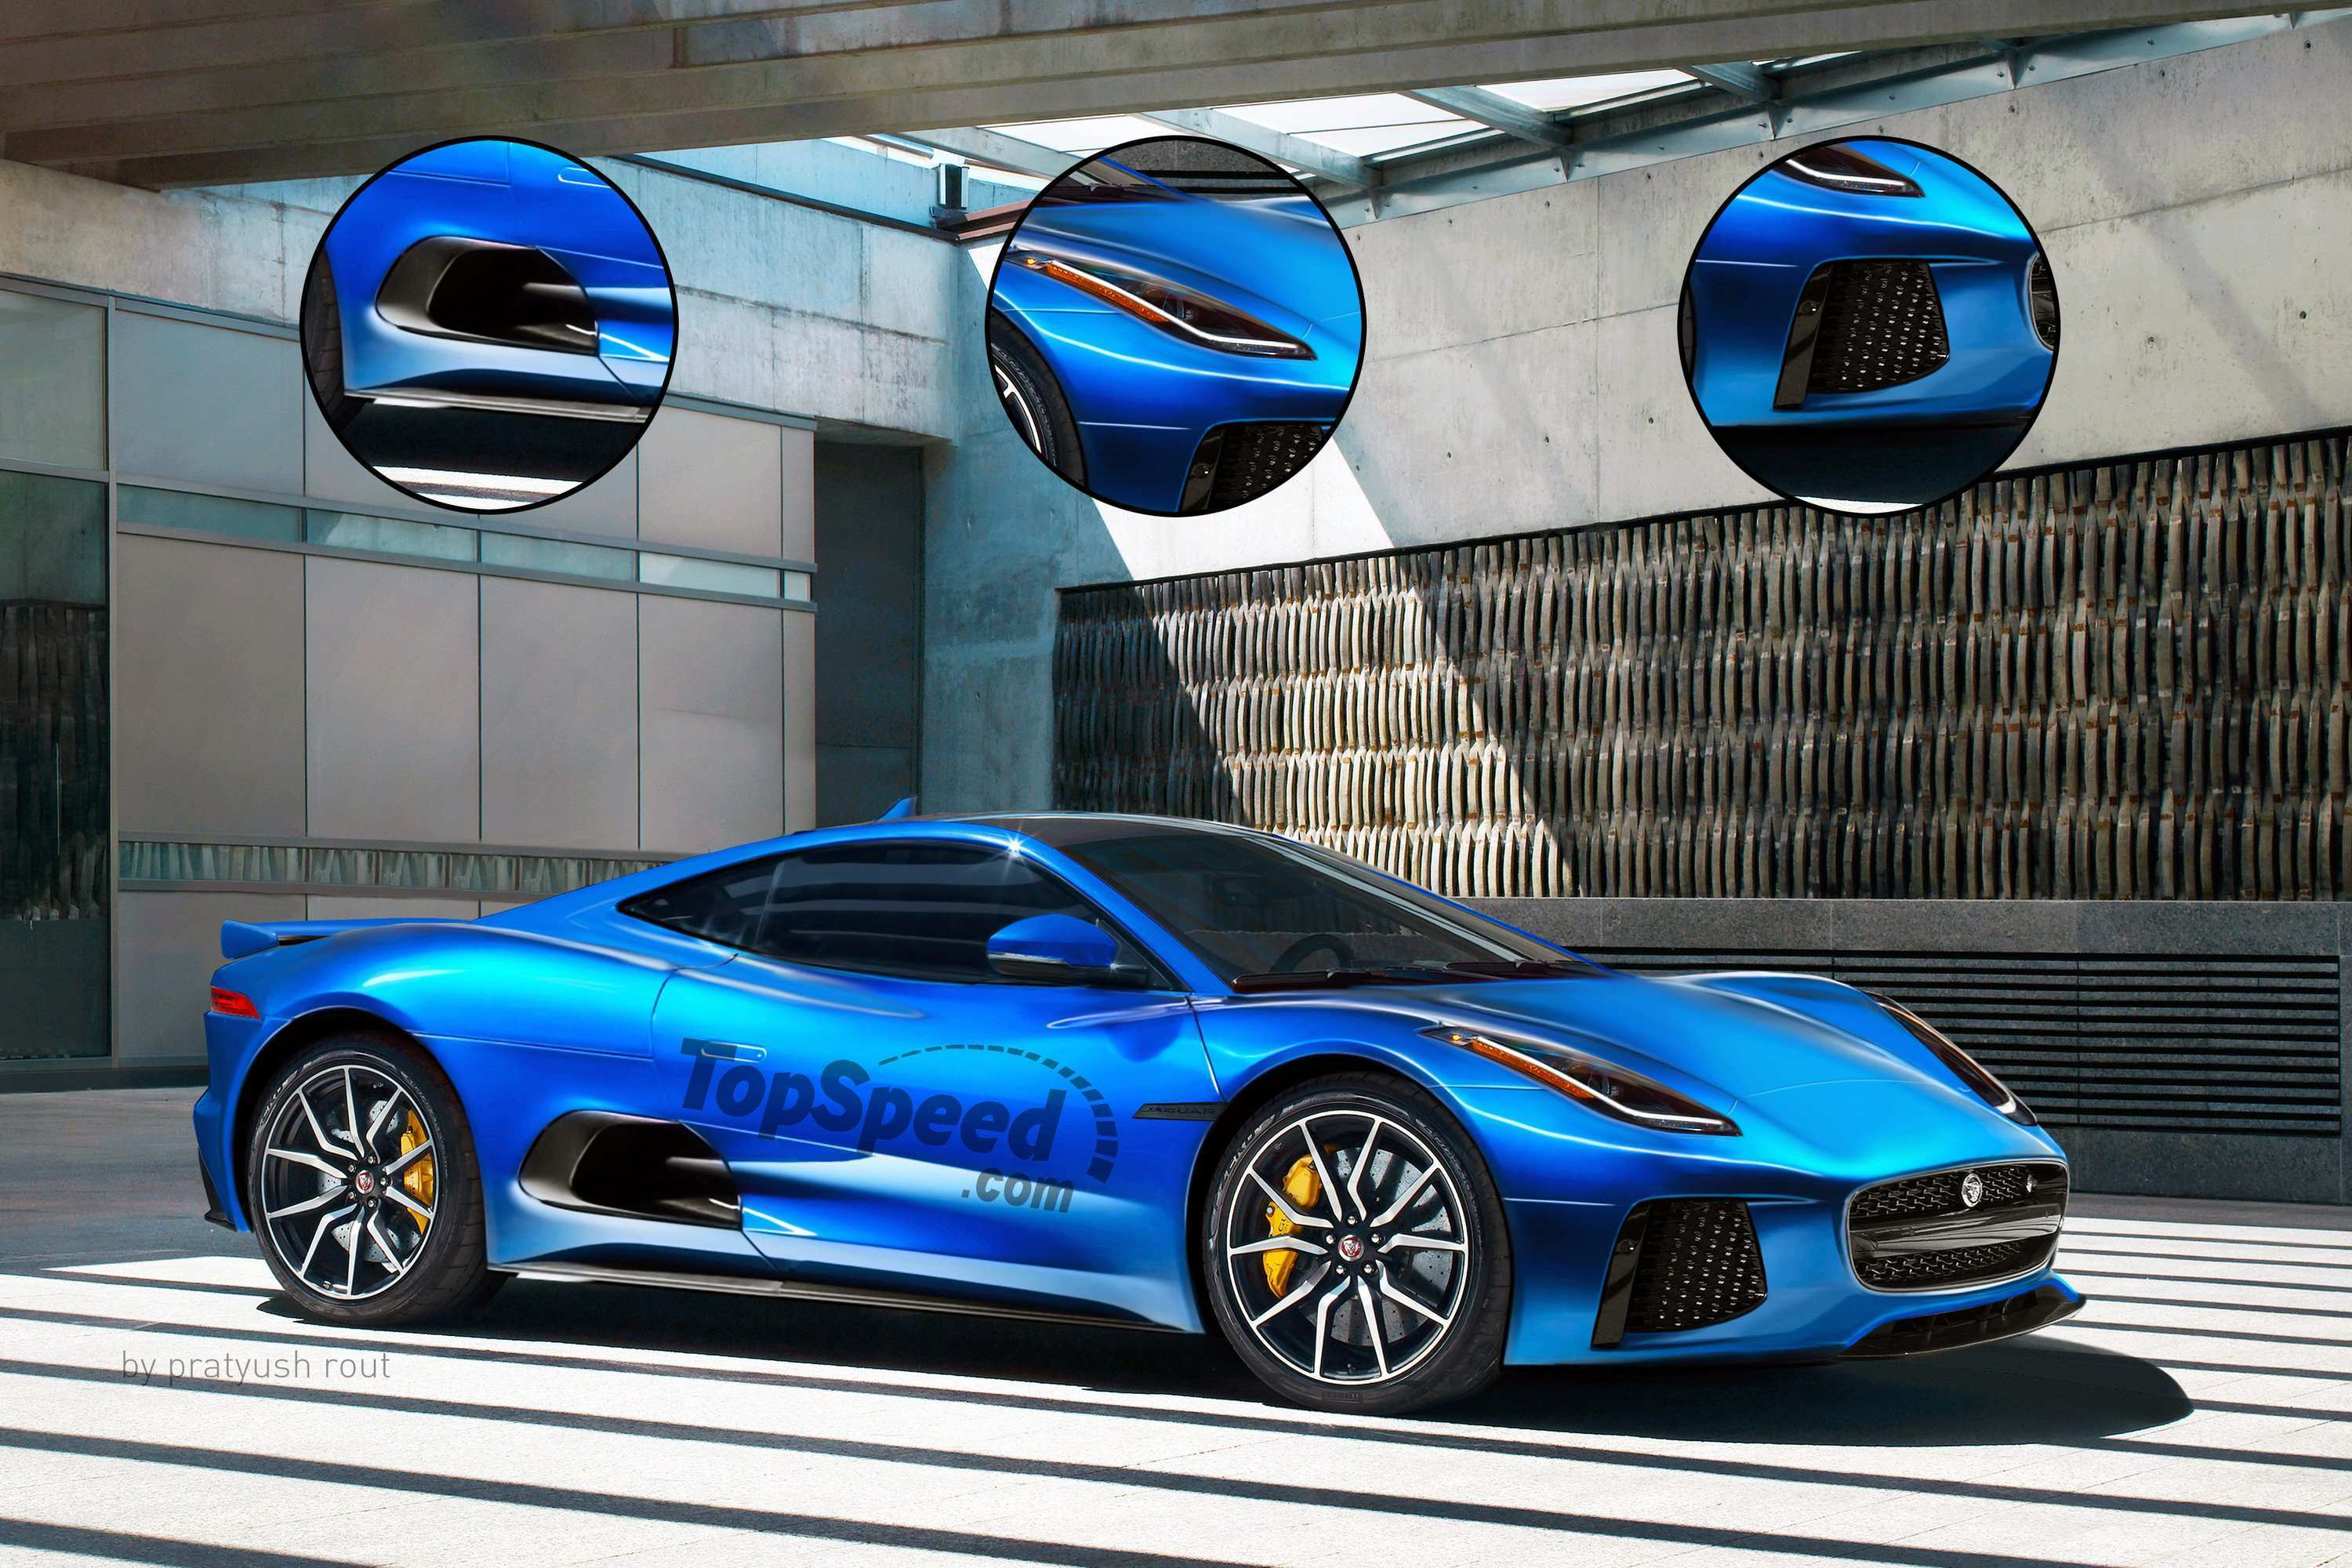 92 All New Jaguar Electric Cars 2020 Picture